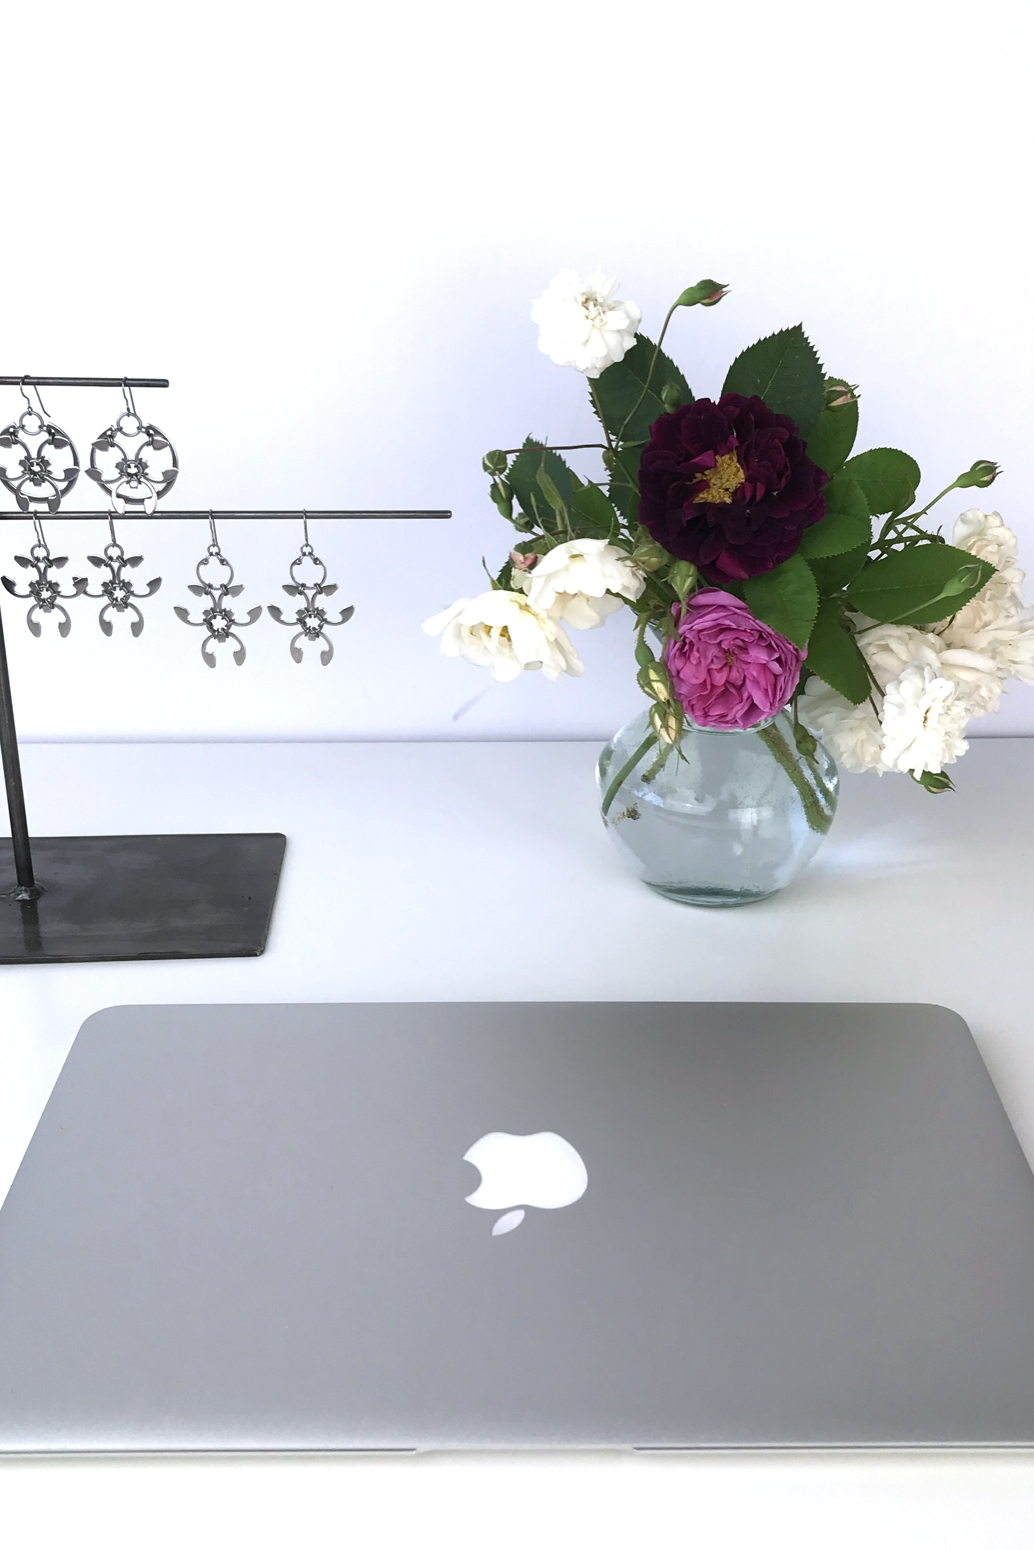 Closed laptop next to a small arrangement of old roses (Rosa alba, Rosa gallica officinalis, moss rose 'Capitaine John Ingram', & 'Felicite et Perpetue') with earrings from the Mechanical Garden collection in Wraptillion's studio.